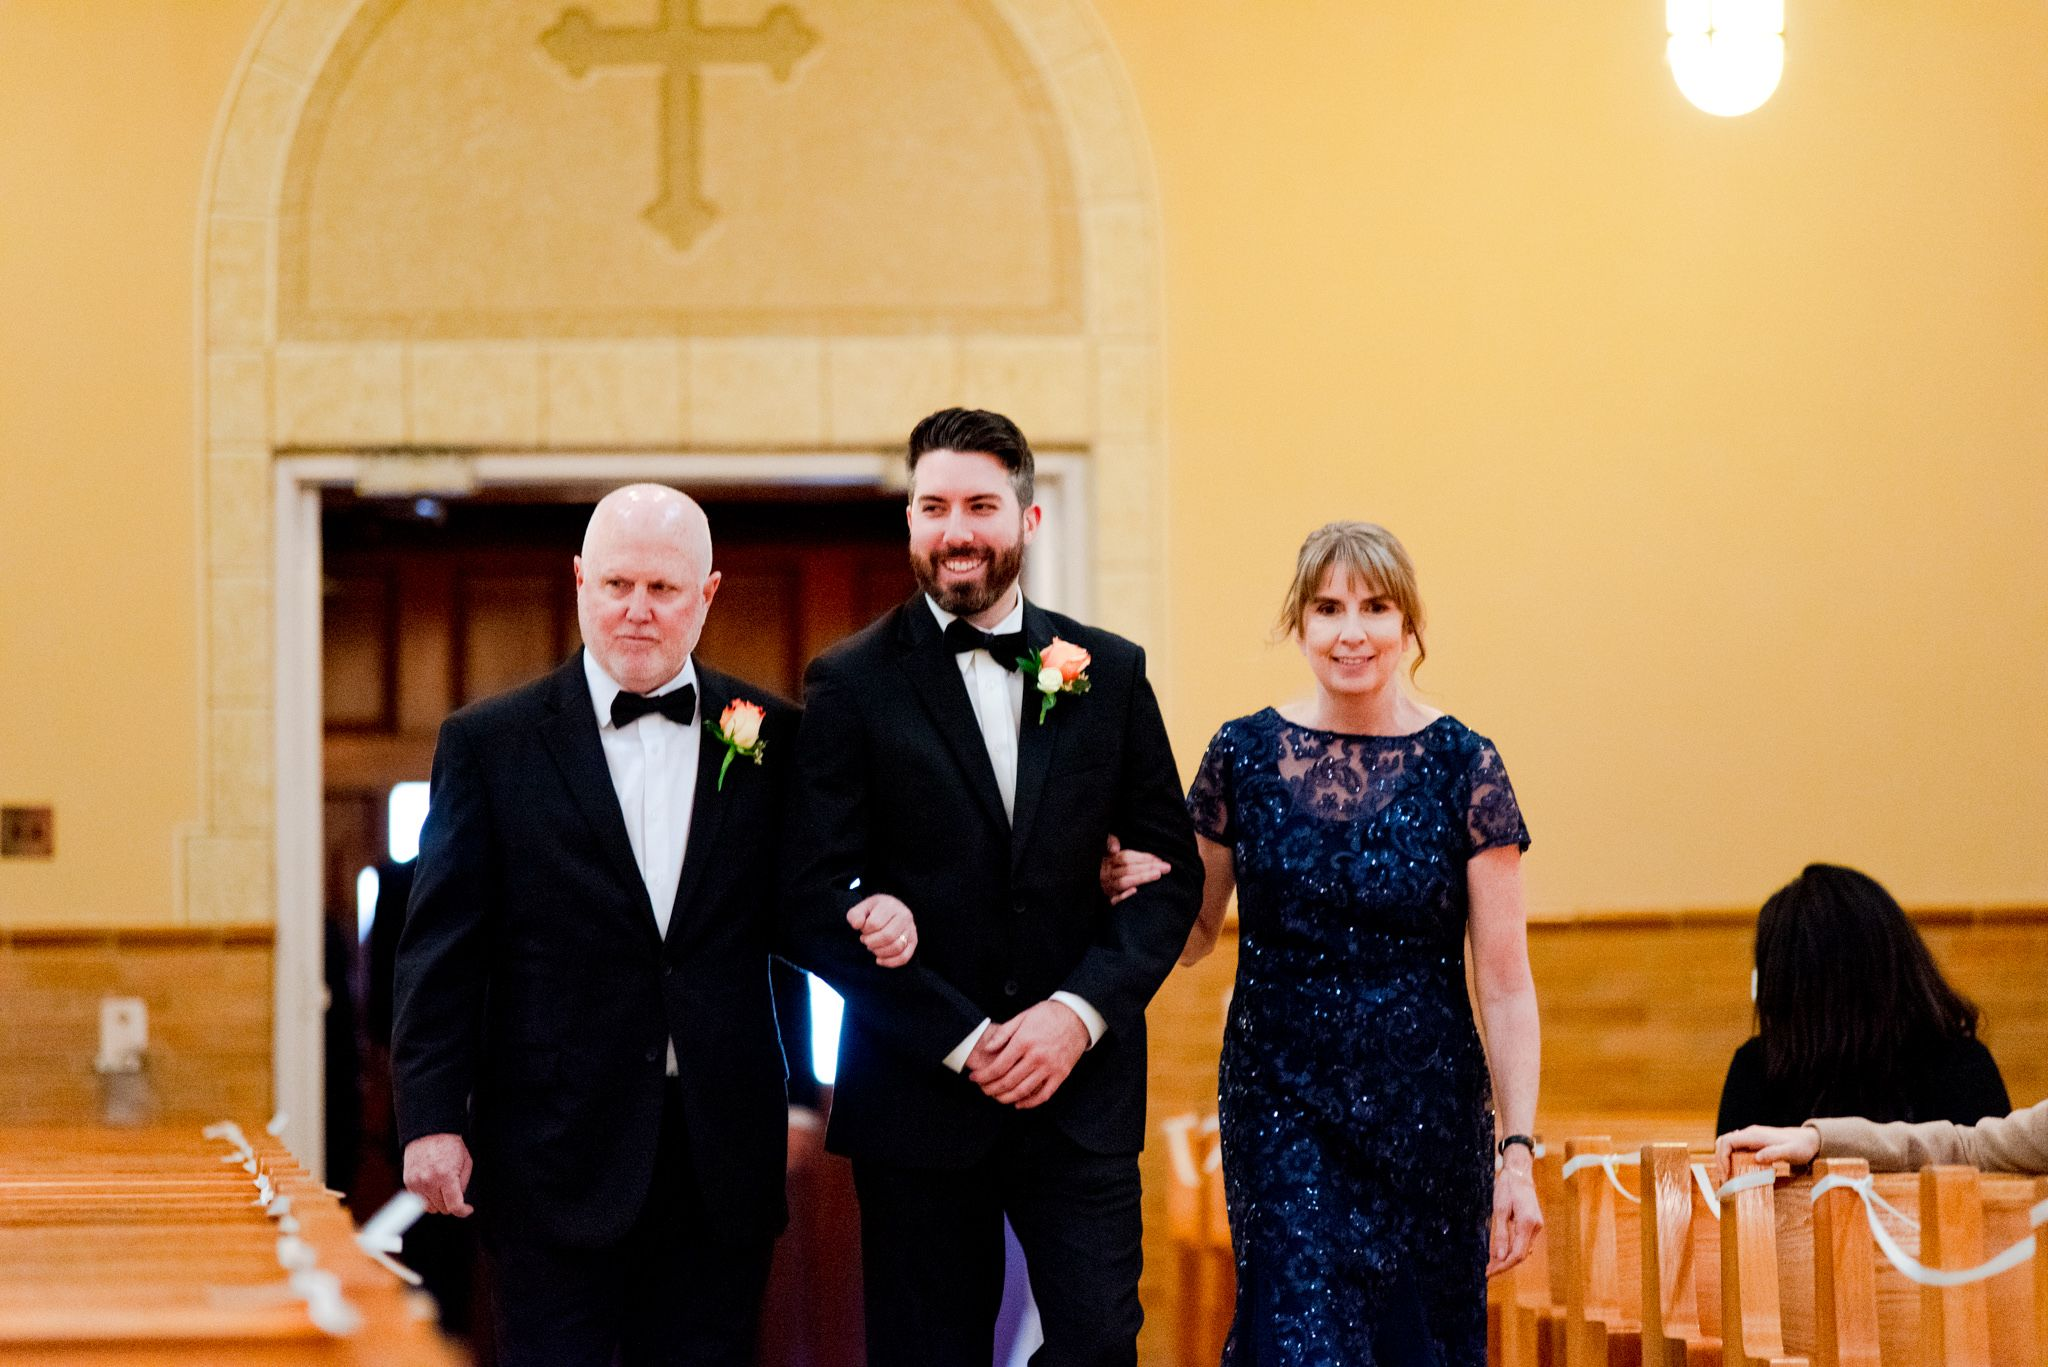 groom walking down the aisle with dad on let and mom on right in blue sparkly dress